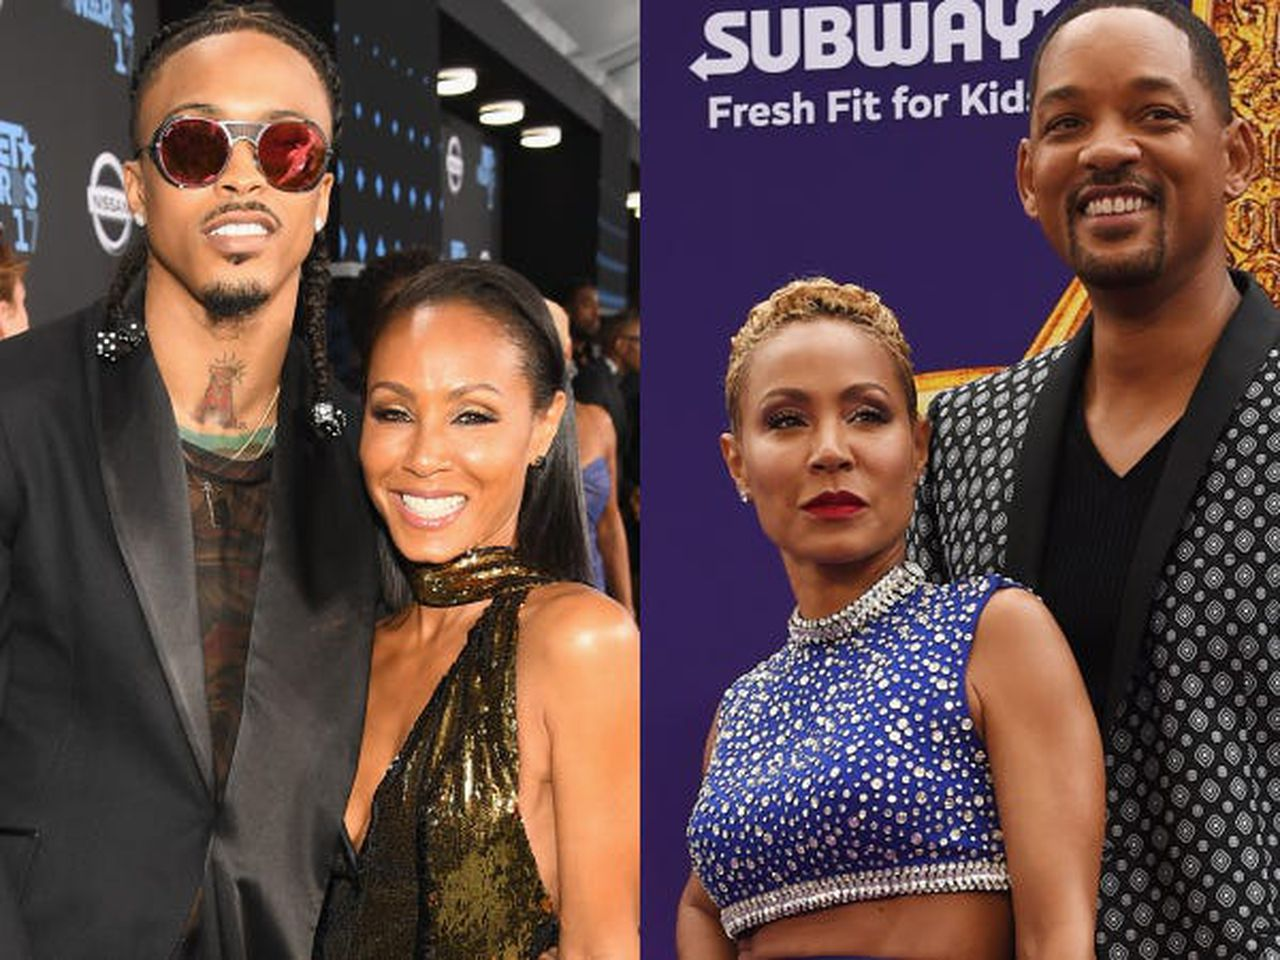 Jada Smith confirms involvement with August Alsina